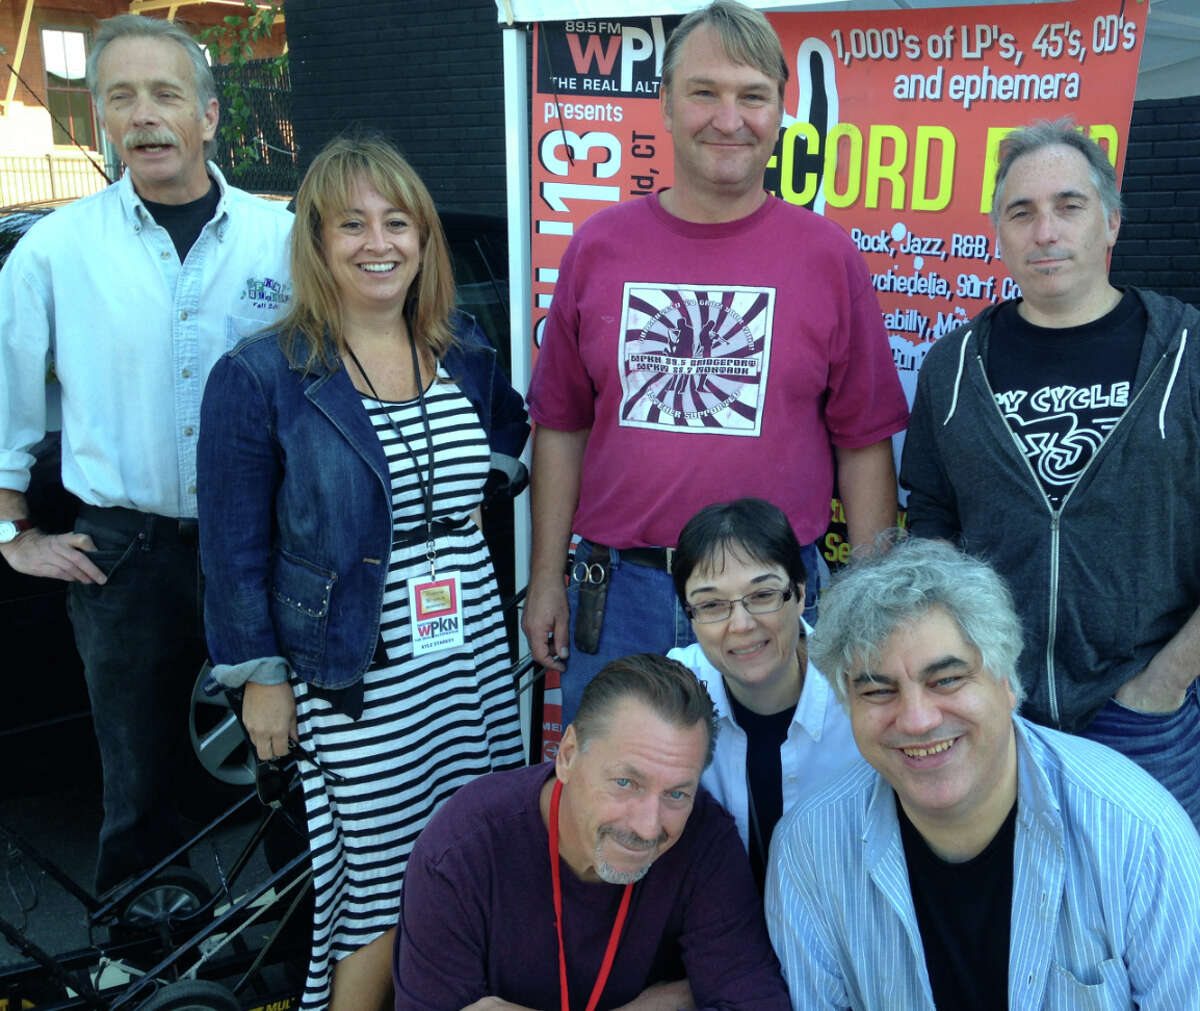 WPKN's 2015 Music Mash record fair will take place Saturday, March 7, at Read's Artspace in Bridgeport, featuring 50 dealers. Above is a photo of volunteers from the last event, in 2013, in Fairfield.